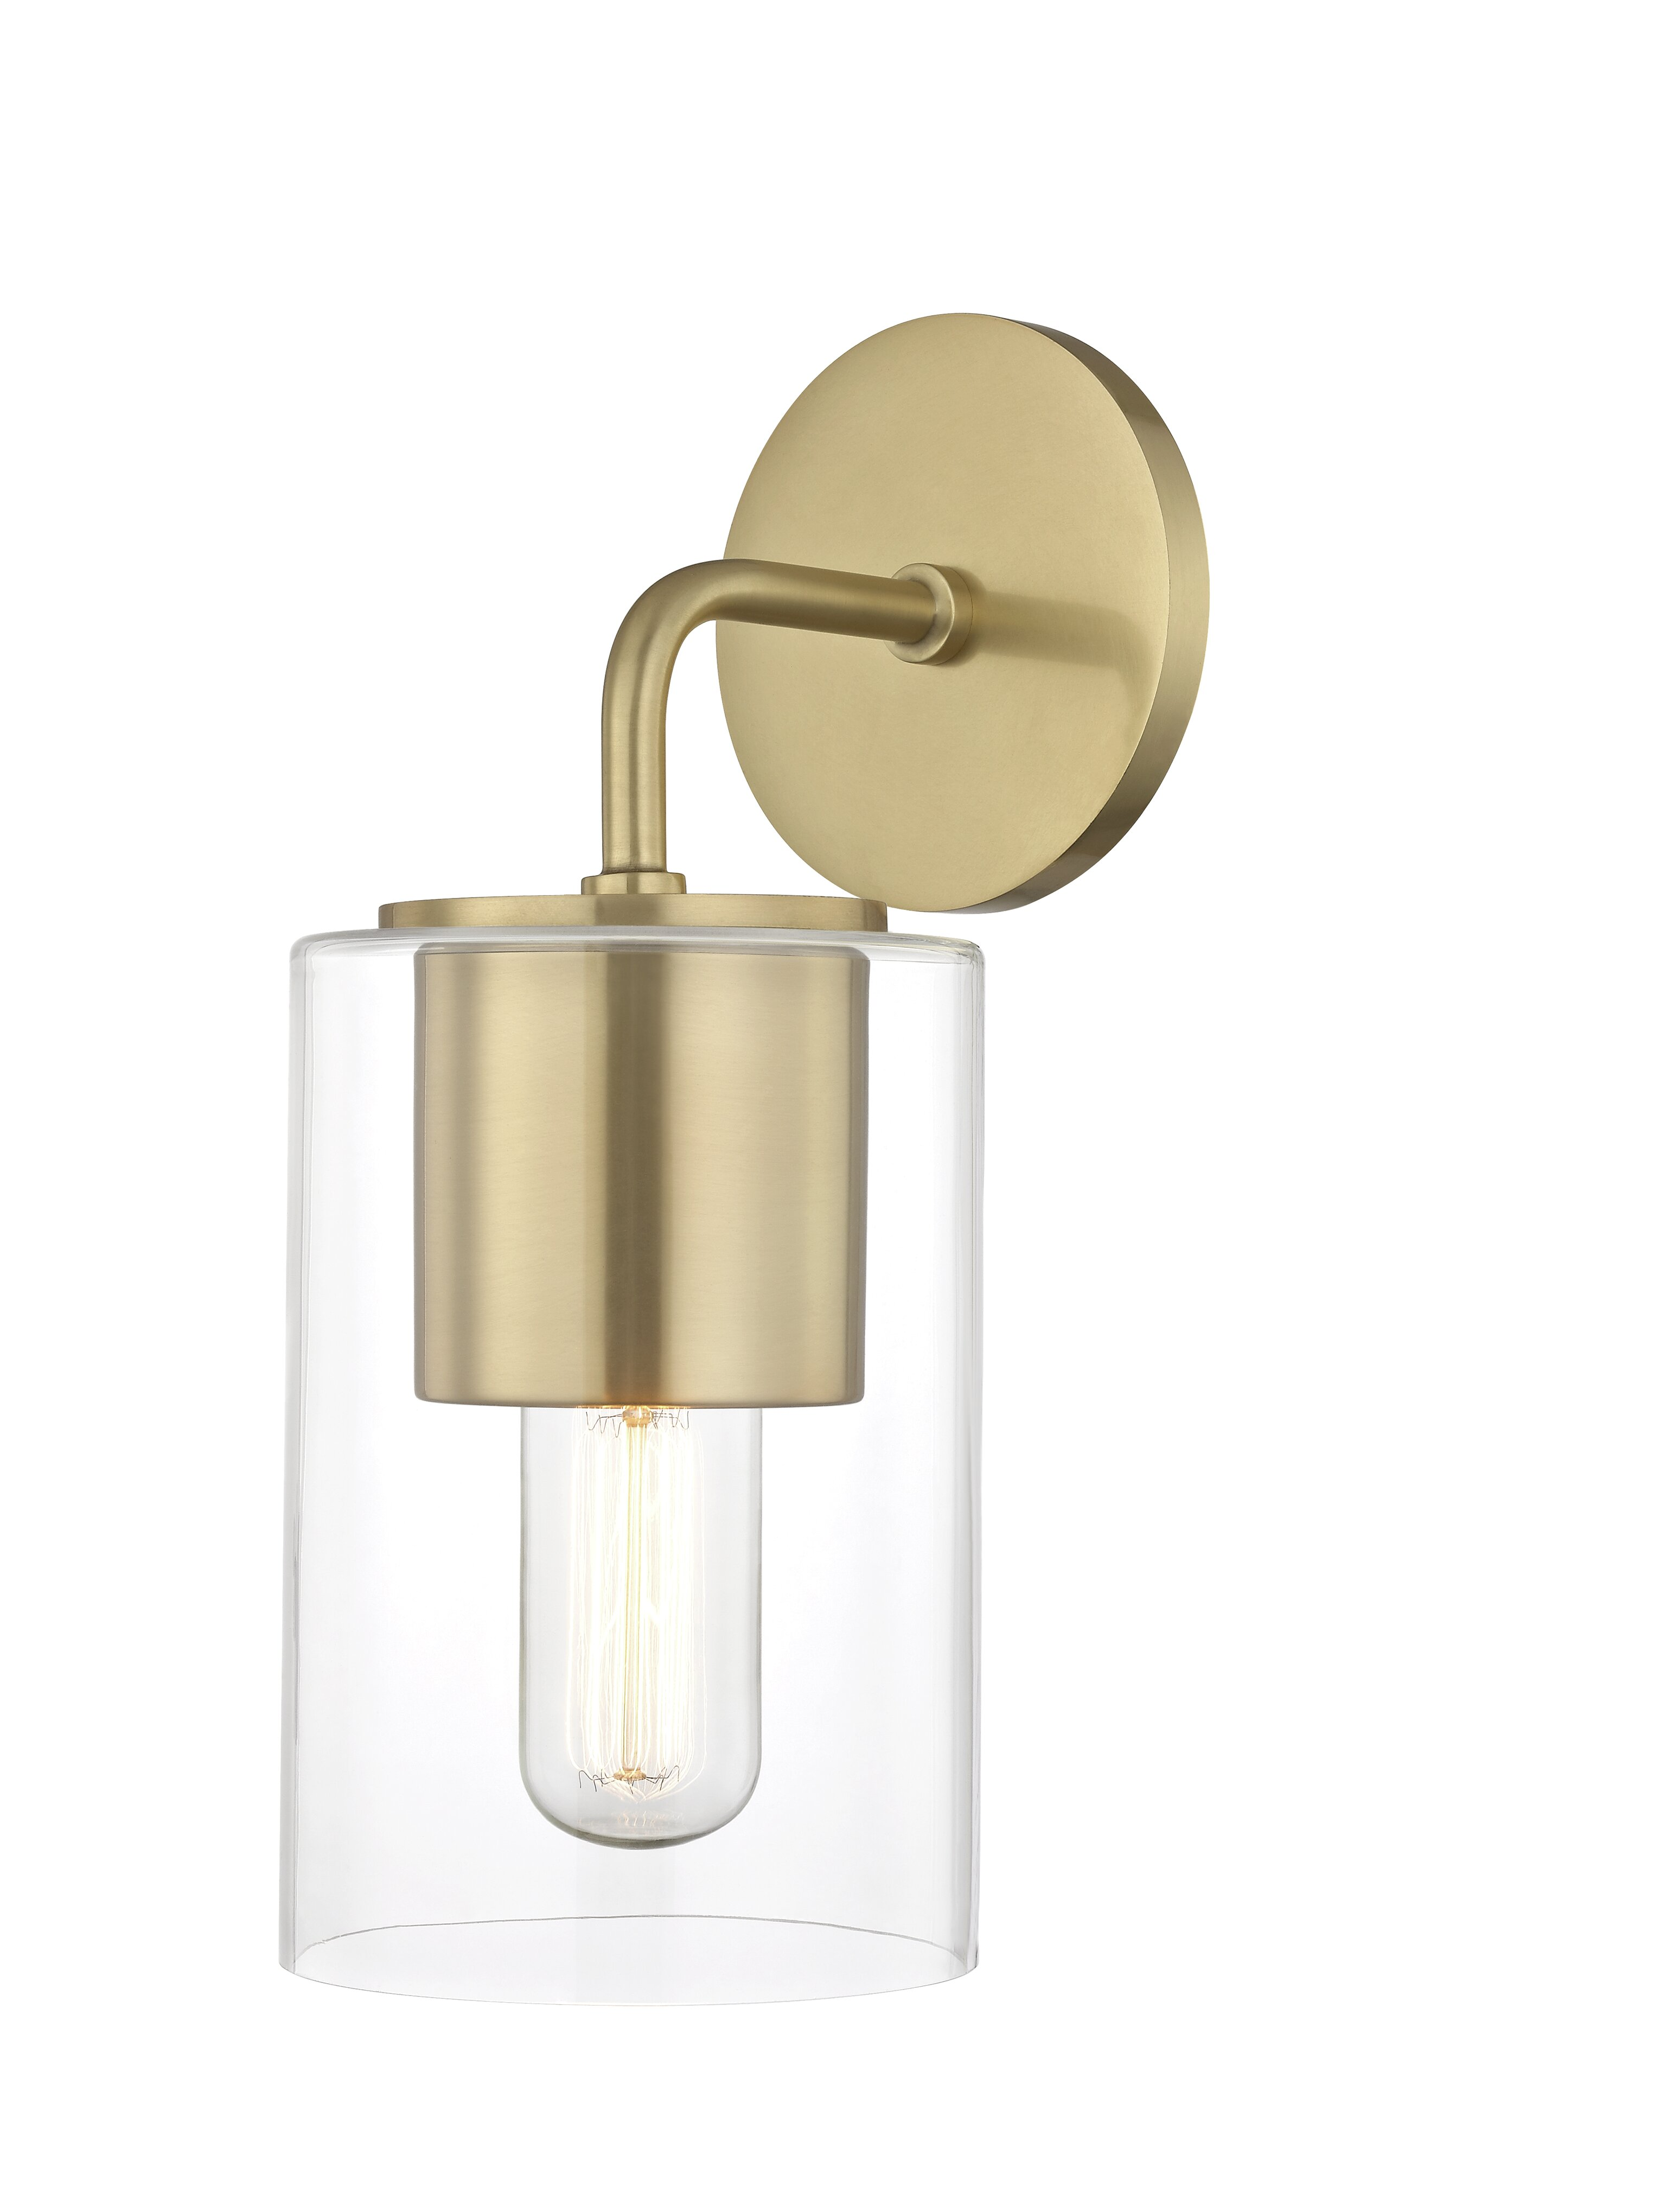 Ahern 1 Light Dimmable Armed Sconce Reviews Joss Main